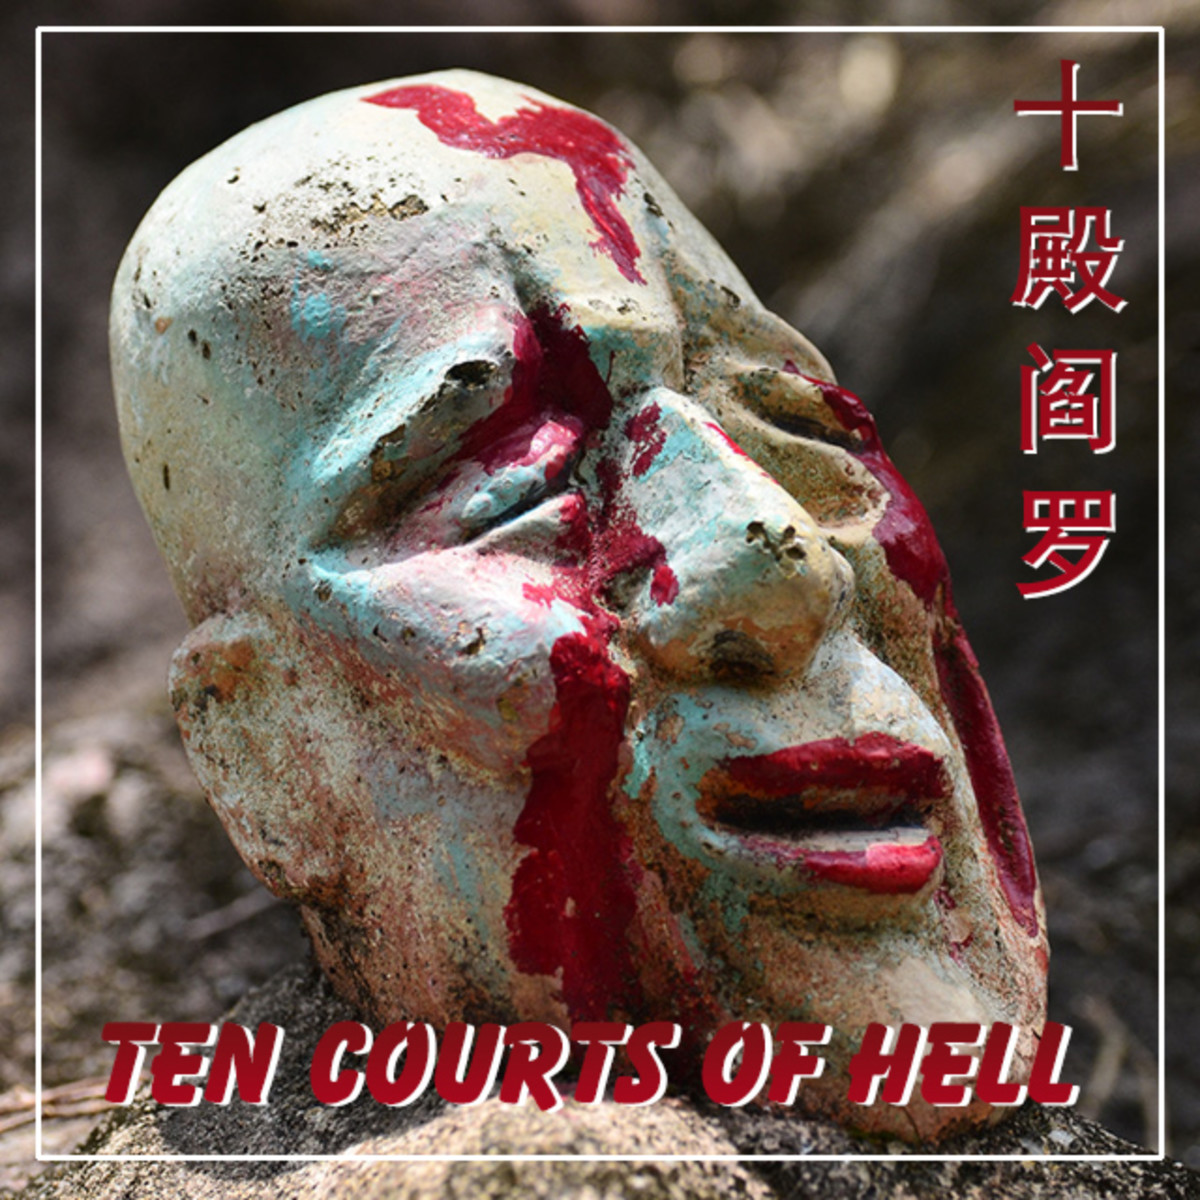 What Are China's Horrific Ten Courts of Hell?